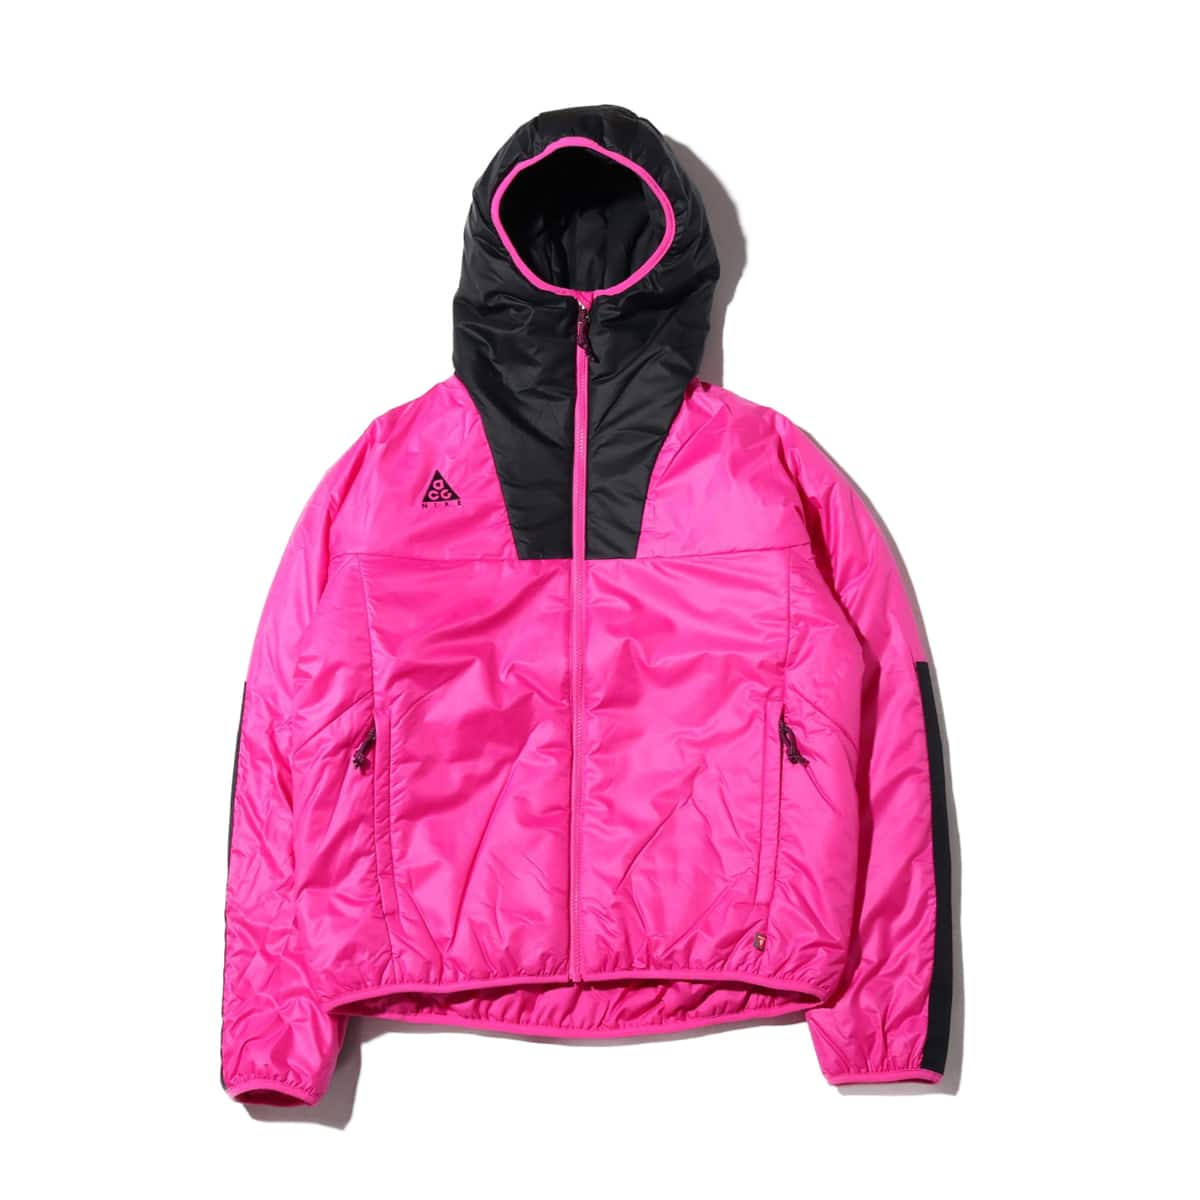 NIKE AS M NRG ACG PRMLFT HD JKT ACTIVE FUCHSIA/BLACK/BLACK 20SP-S_photo_large